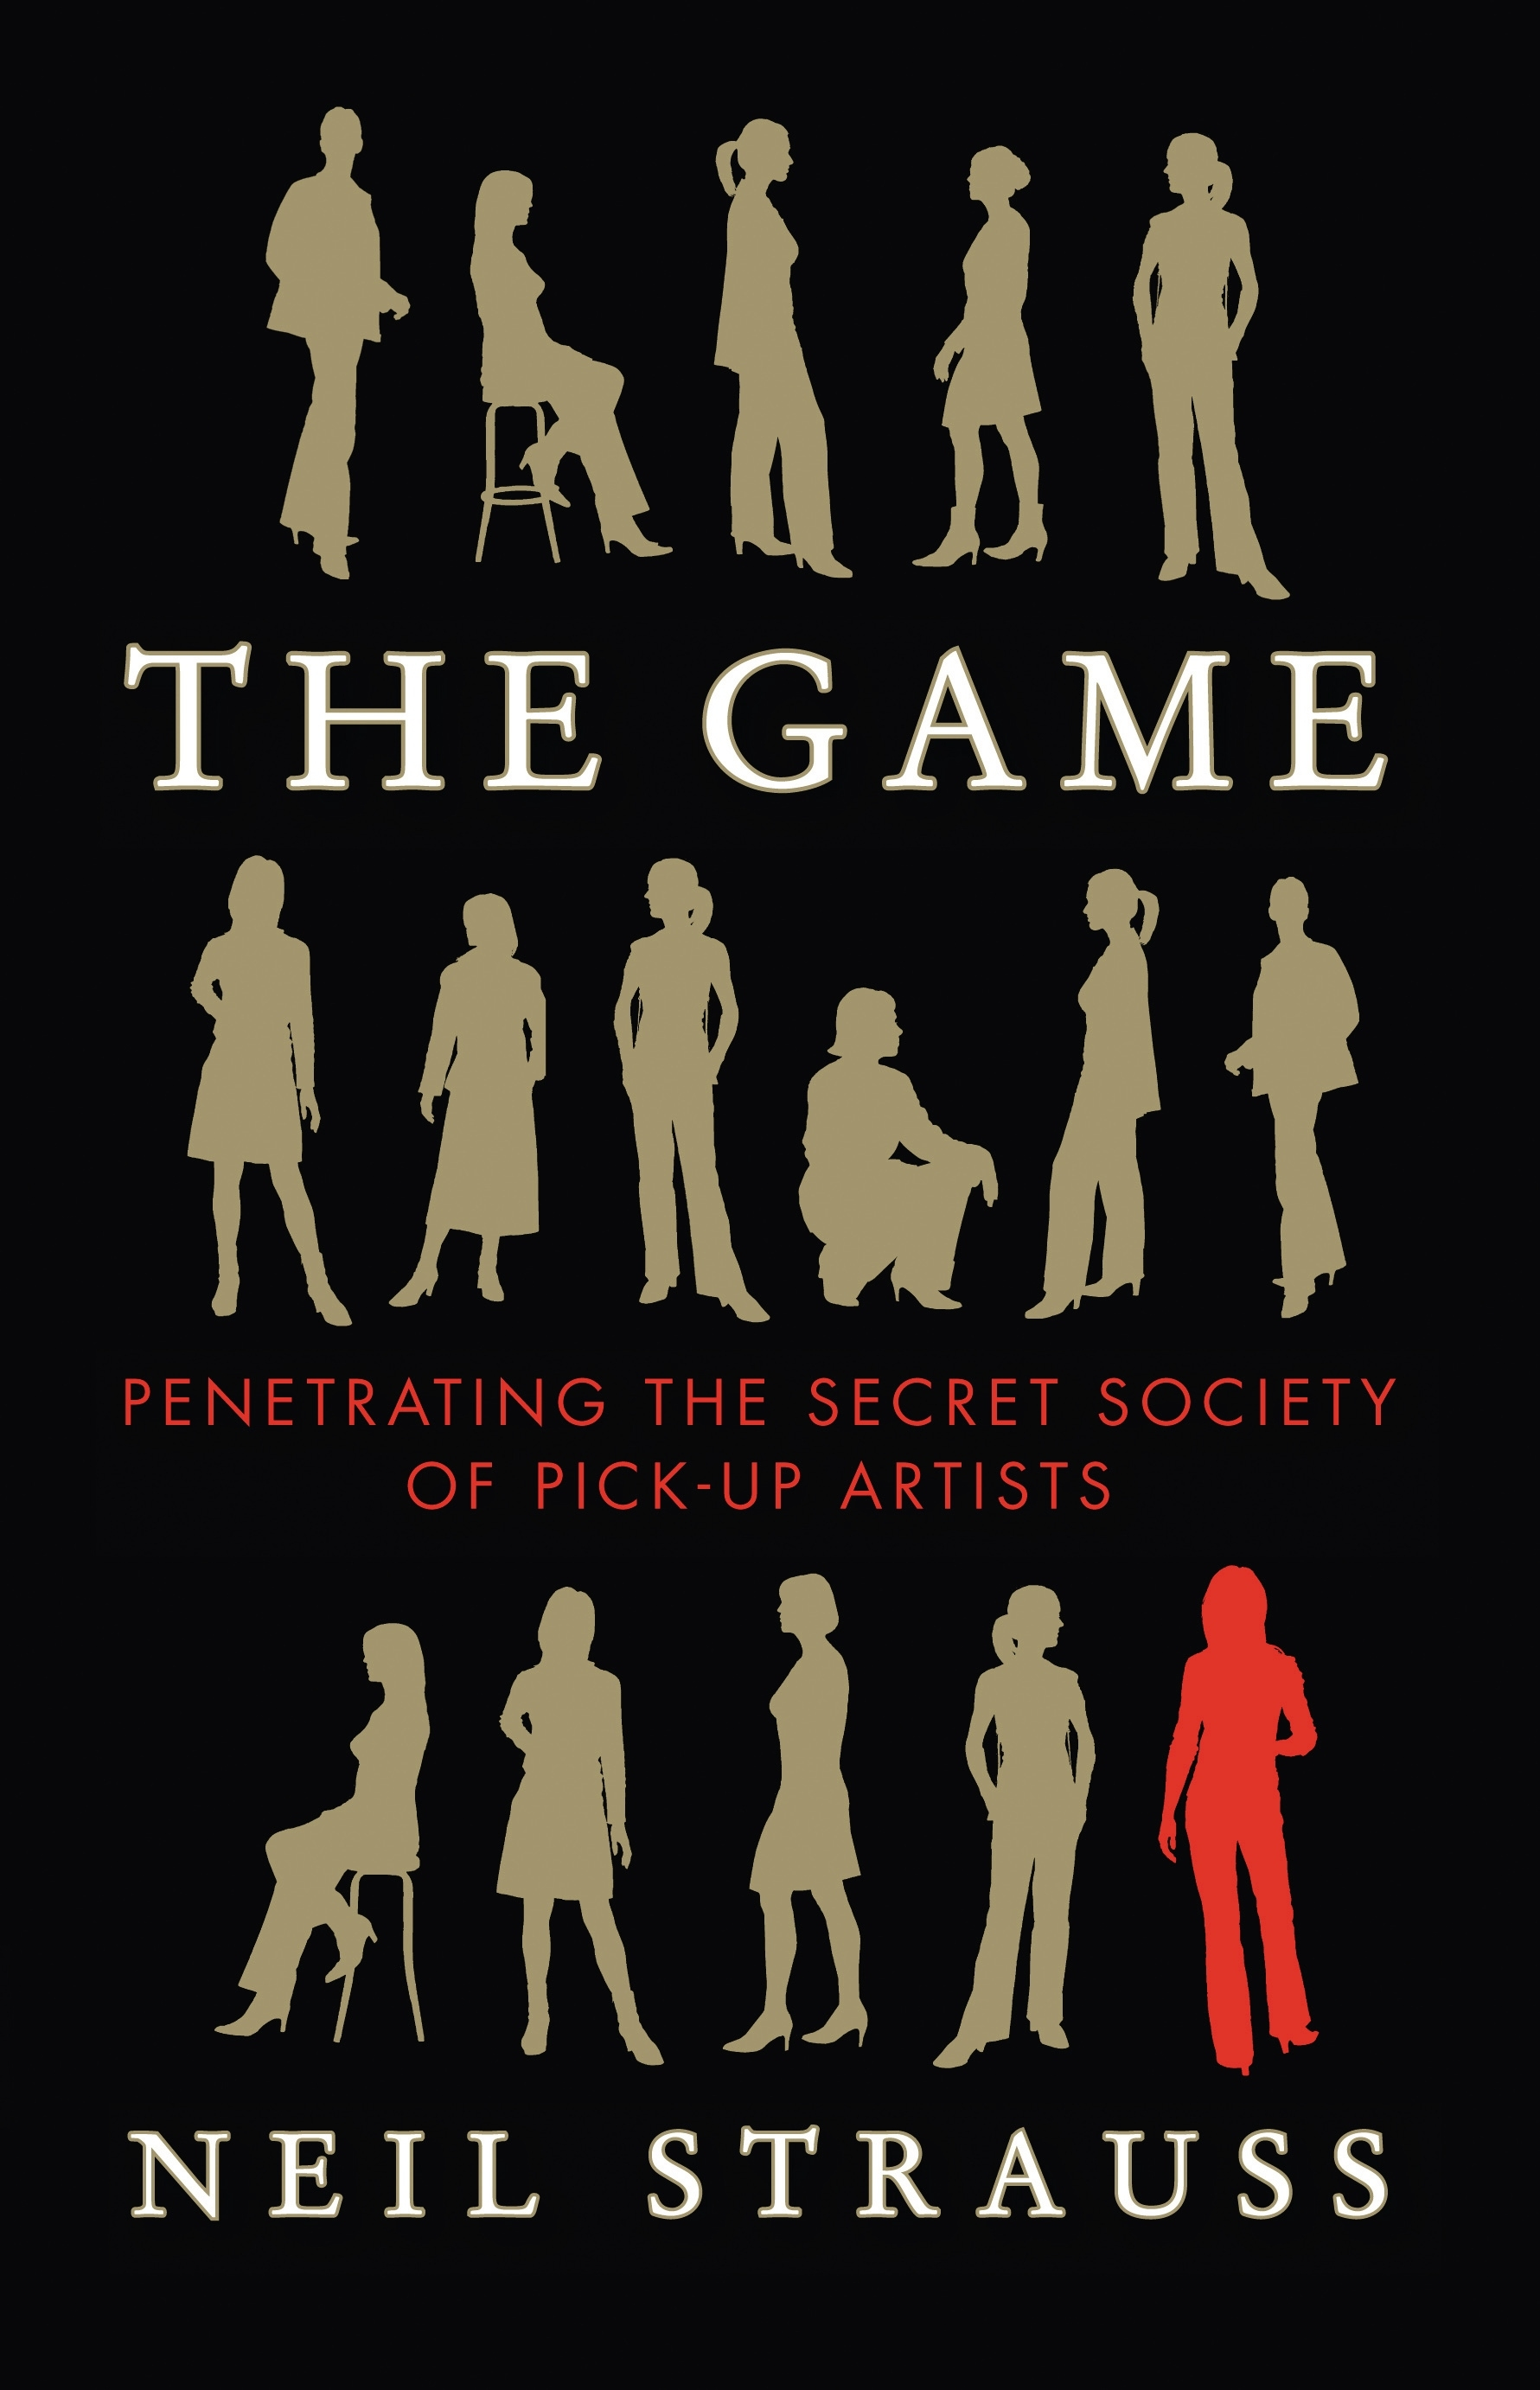 The book the game by neil strauss